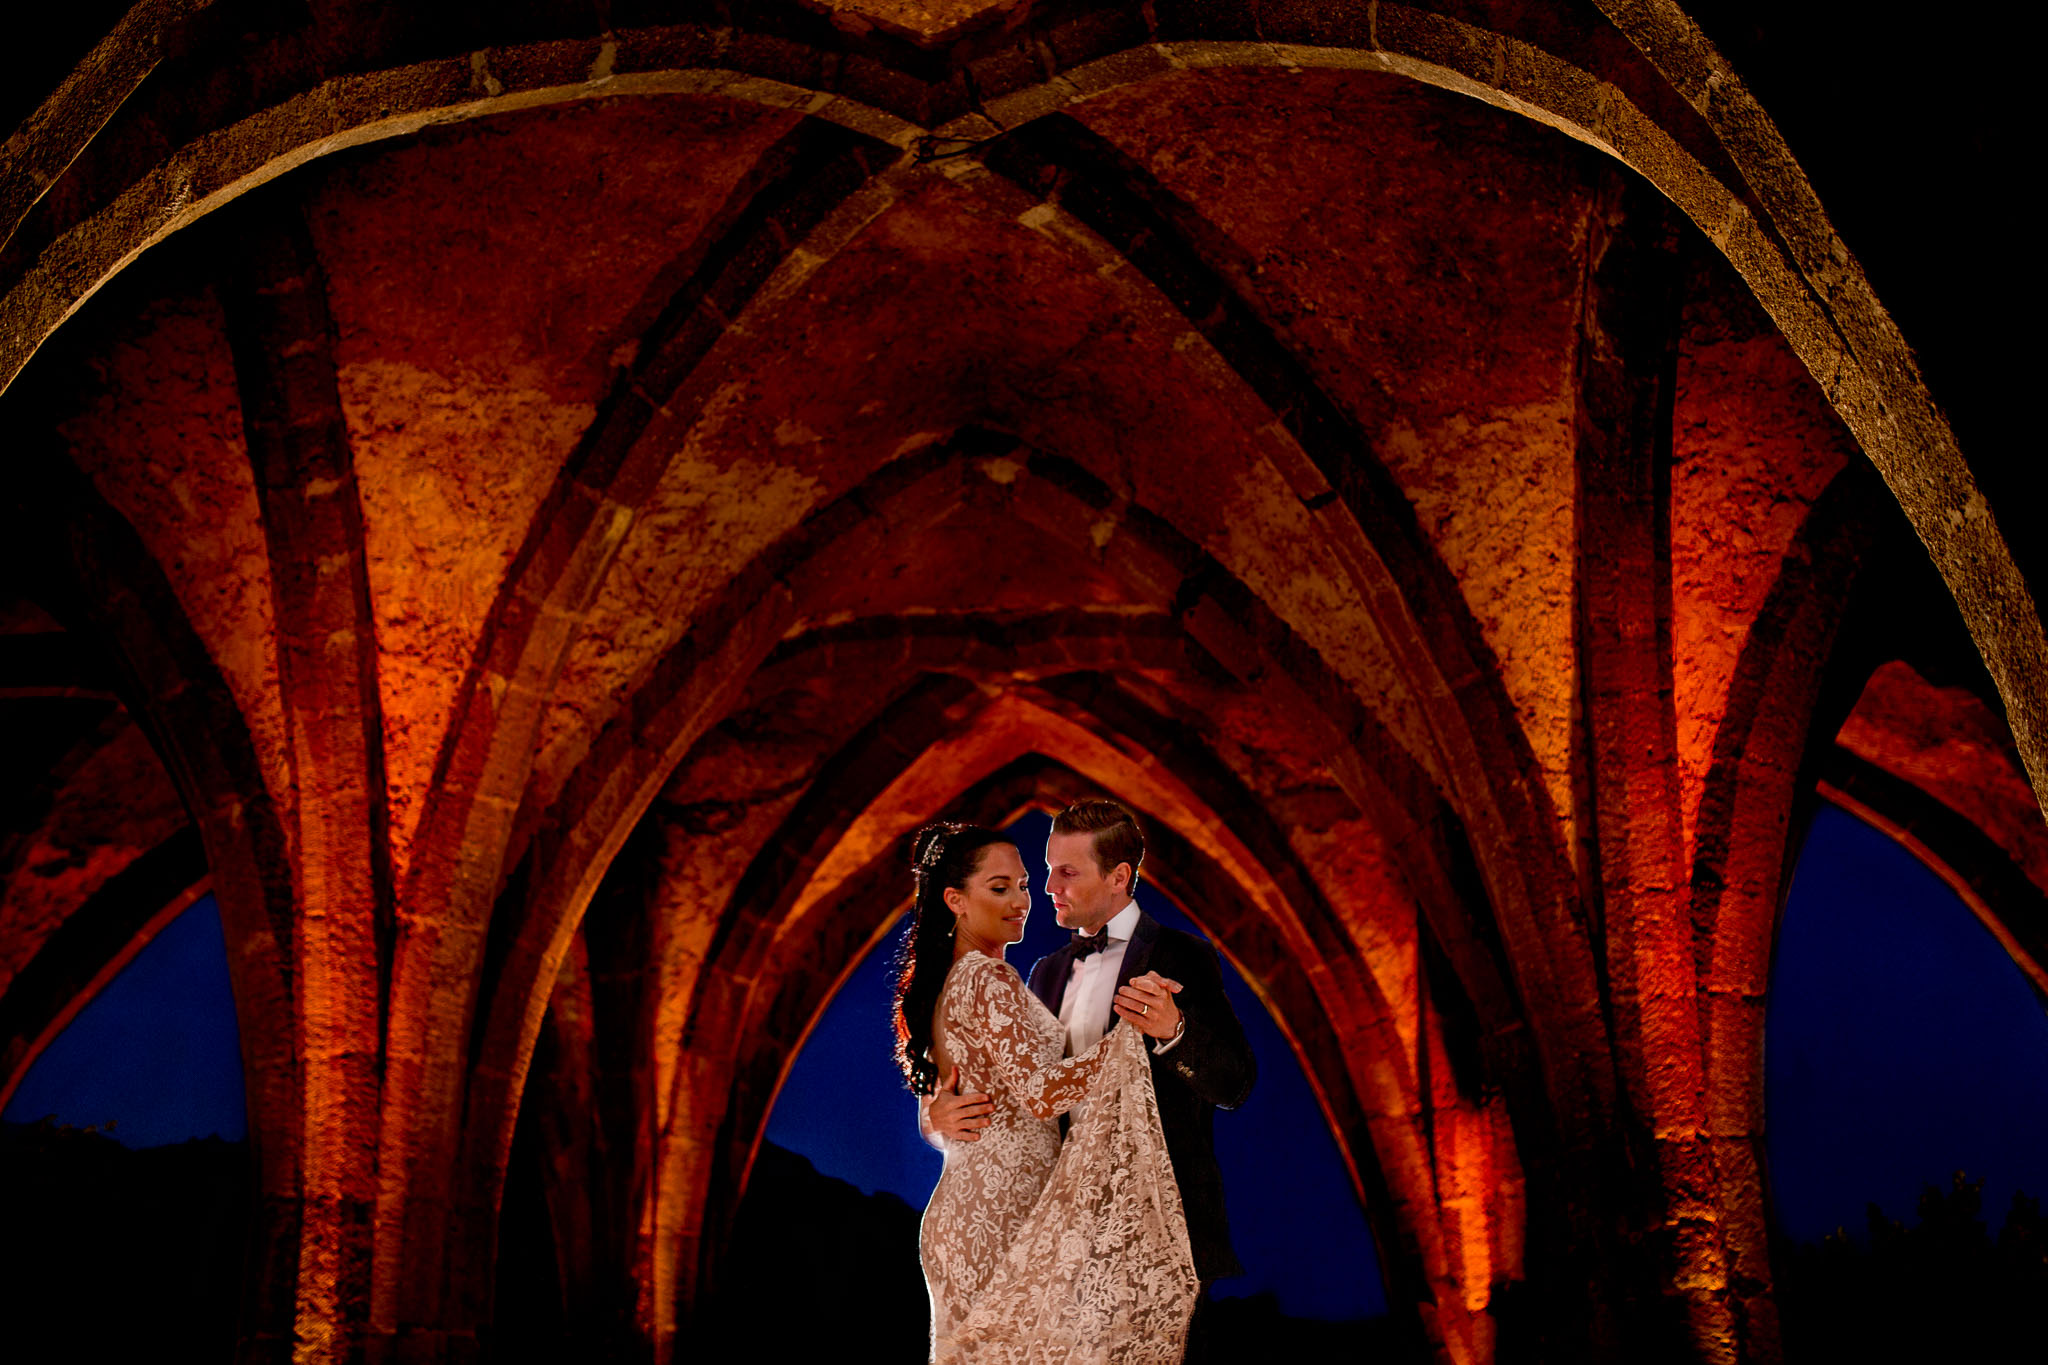 Bride and Groom First dance in Crypt at Villa Cimbrone